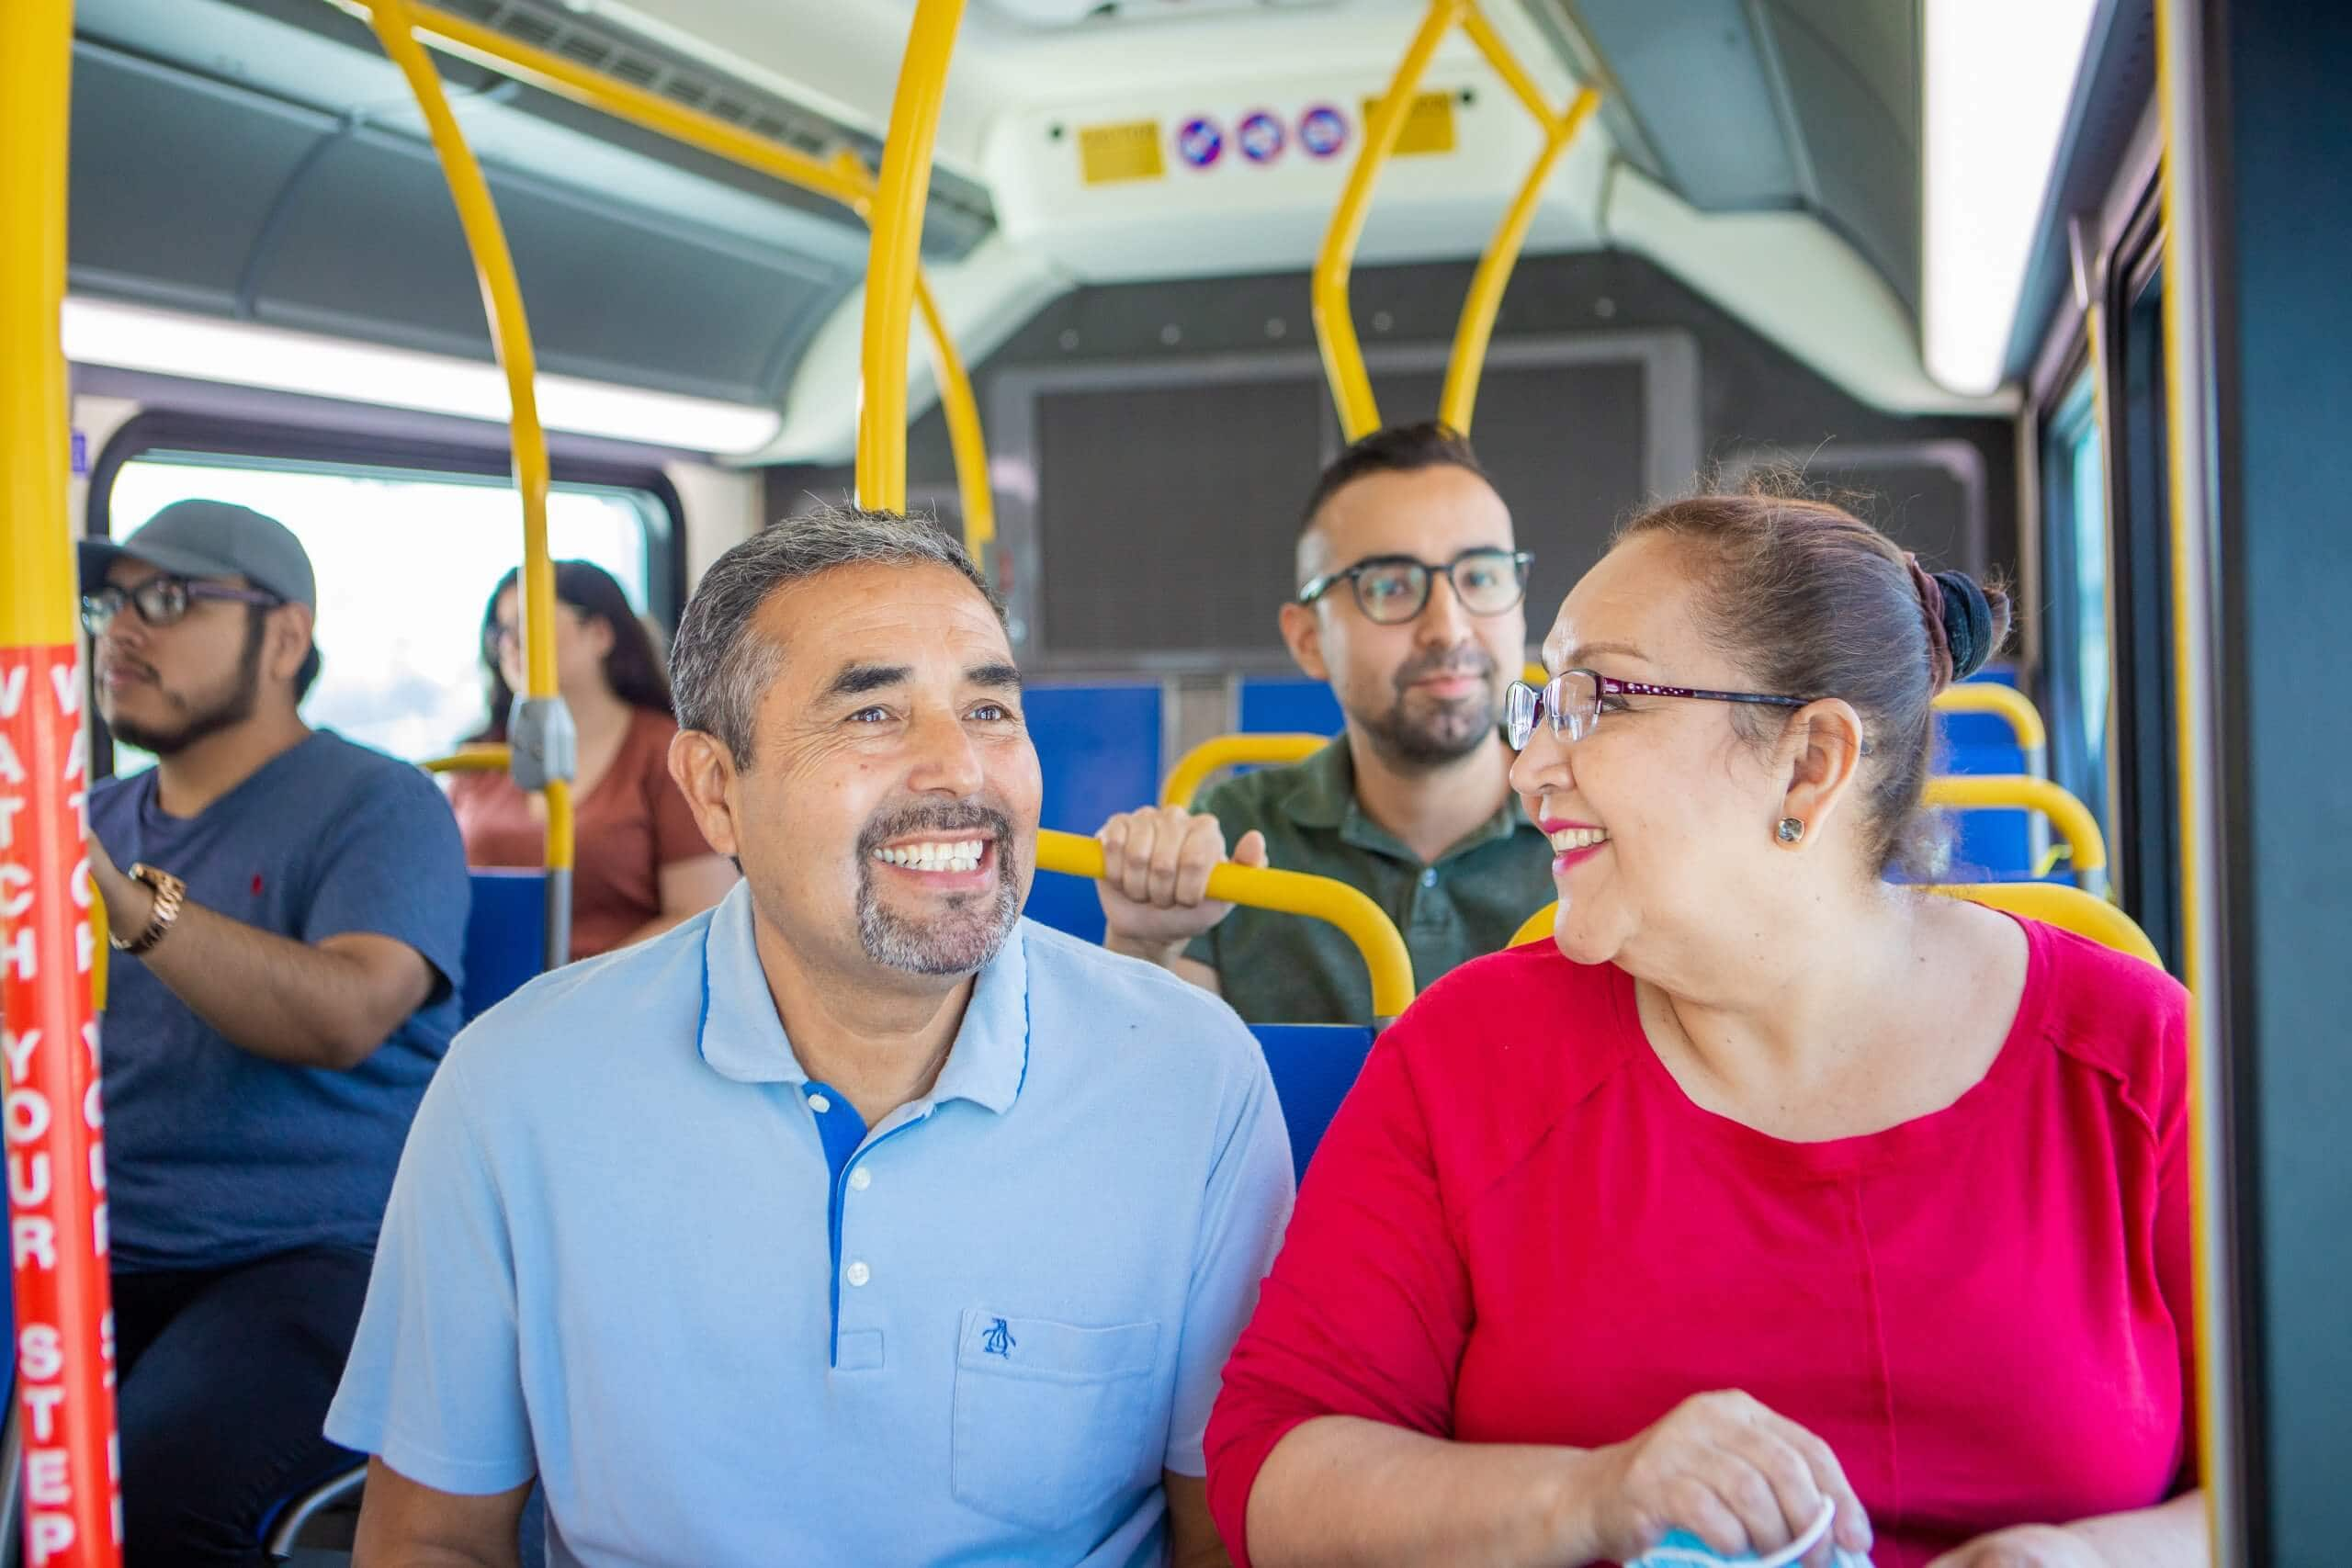 Smiling customers on bus